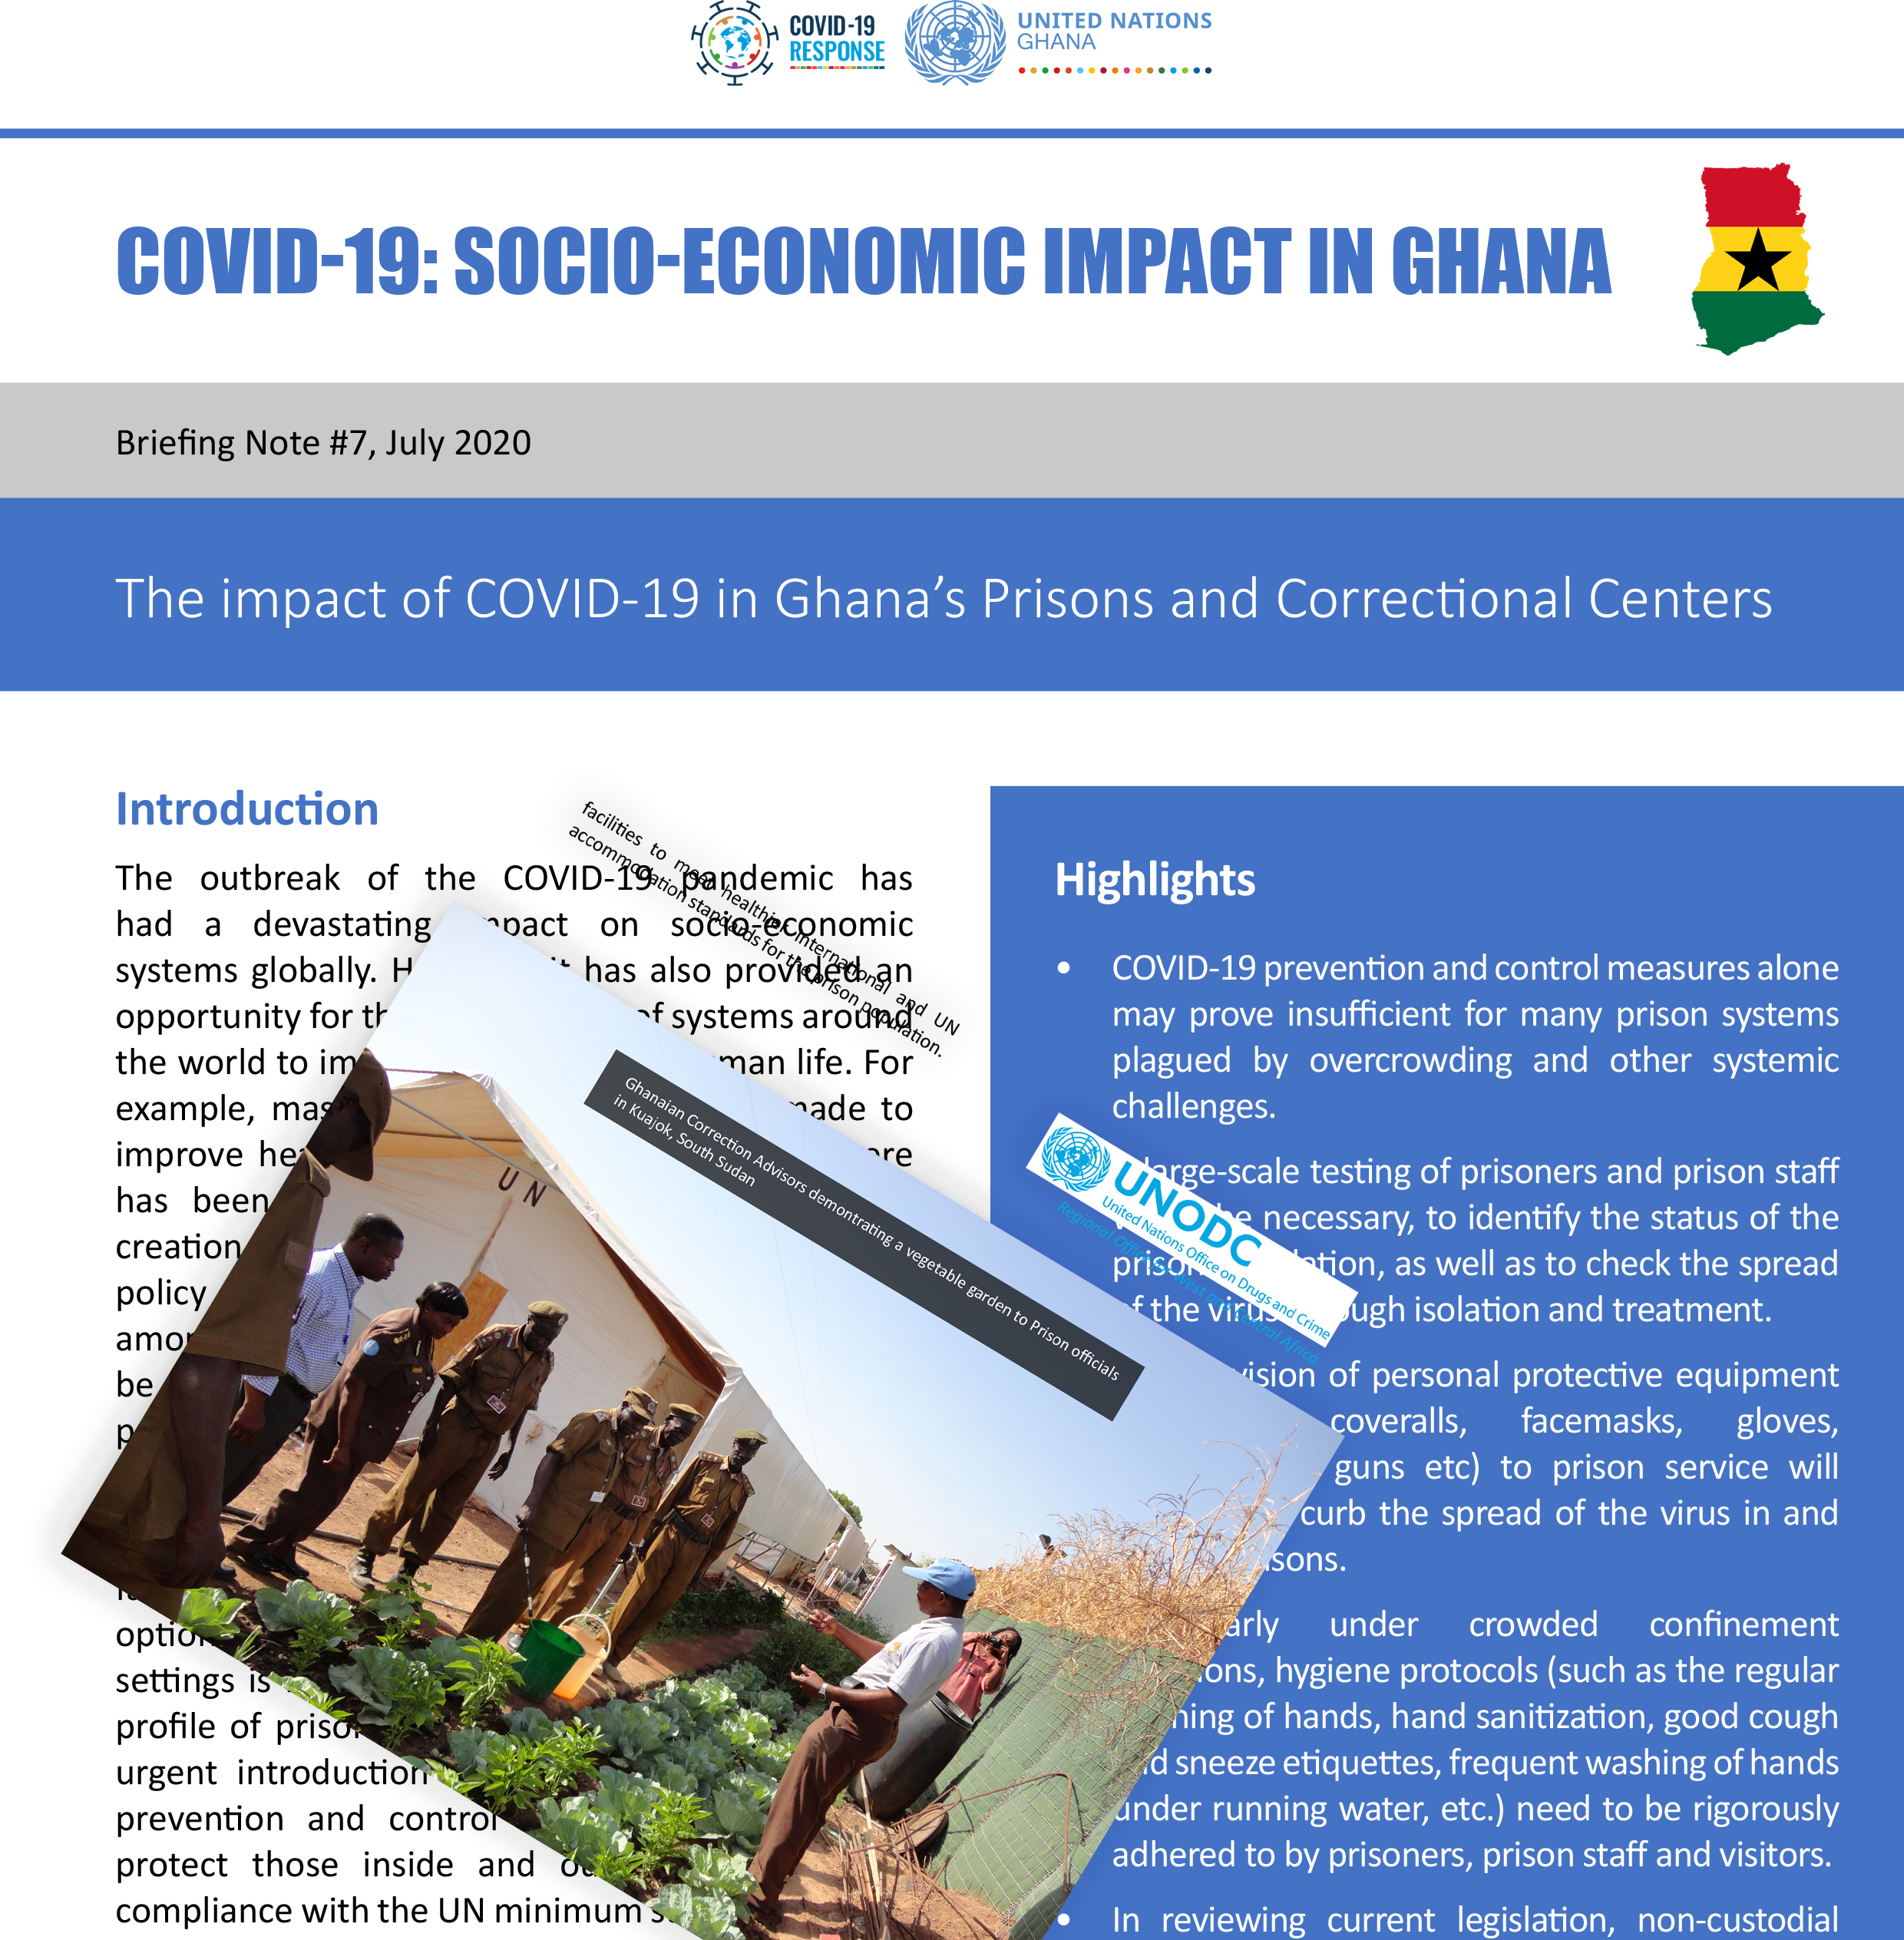 The impact of COVID-19 in Ghana's Prisons and Correctional Centers